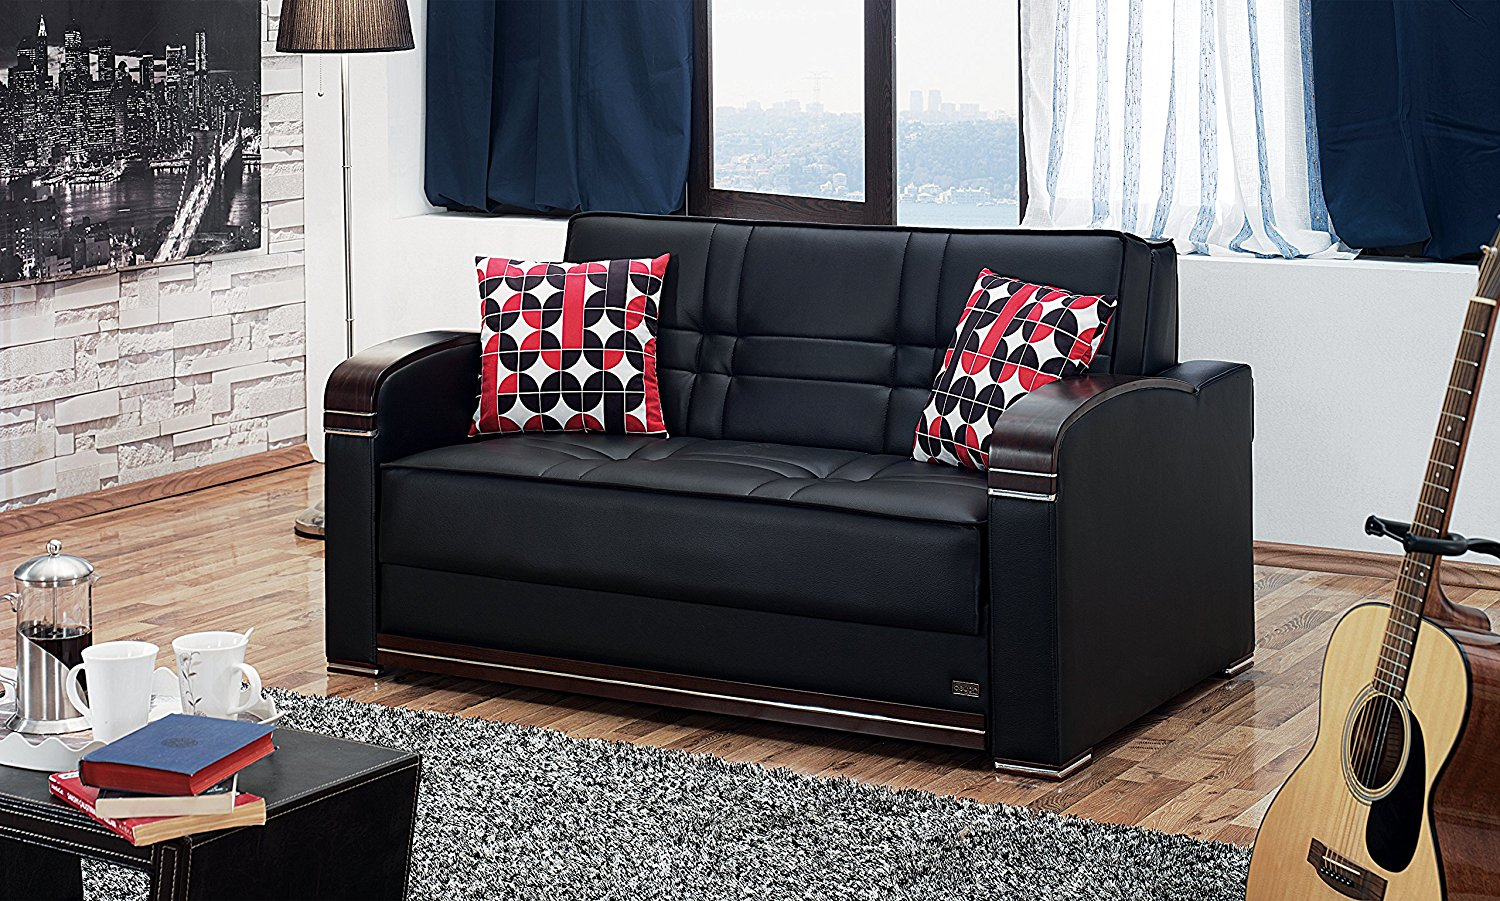 Groovy Cheap Convertible Loveseat Find Convertible Loveseat Deals Caraccident5 Cool Chair Designs And Ideas Caraccident5Info